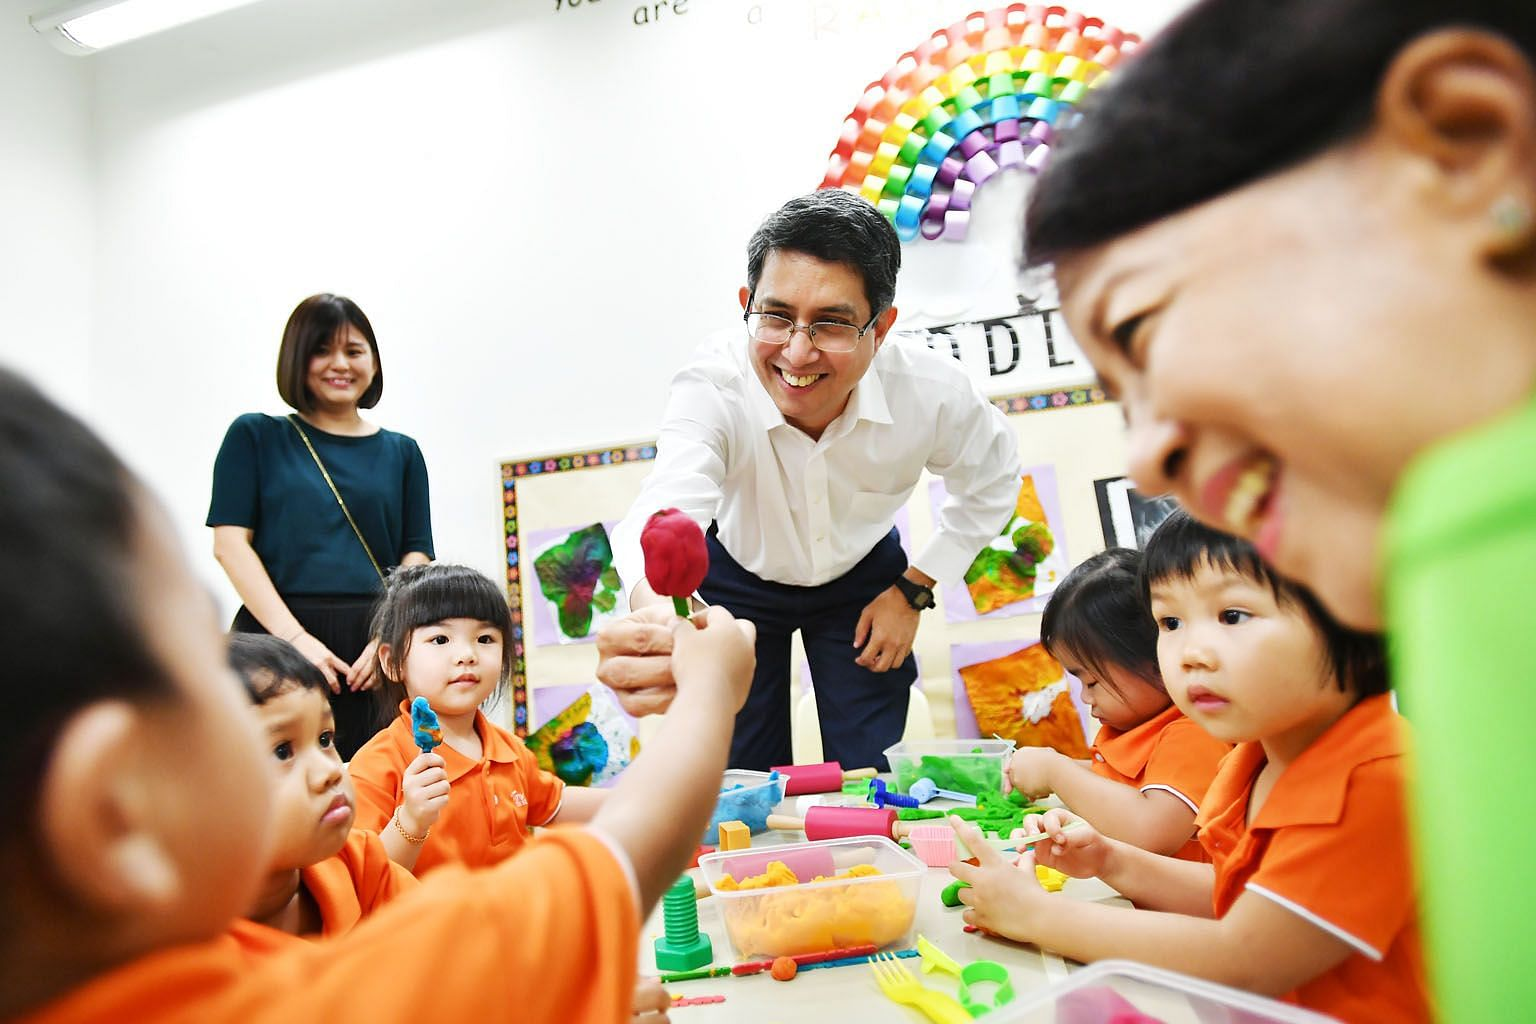 Senior Parliamentary Secretary for Social and Family Development and Education Muhammad Faishal Ibrahim interacting with children during a visit to a My First Skool branch in Yishun this week. For a start, M³'s collaboration with the Early Childhood